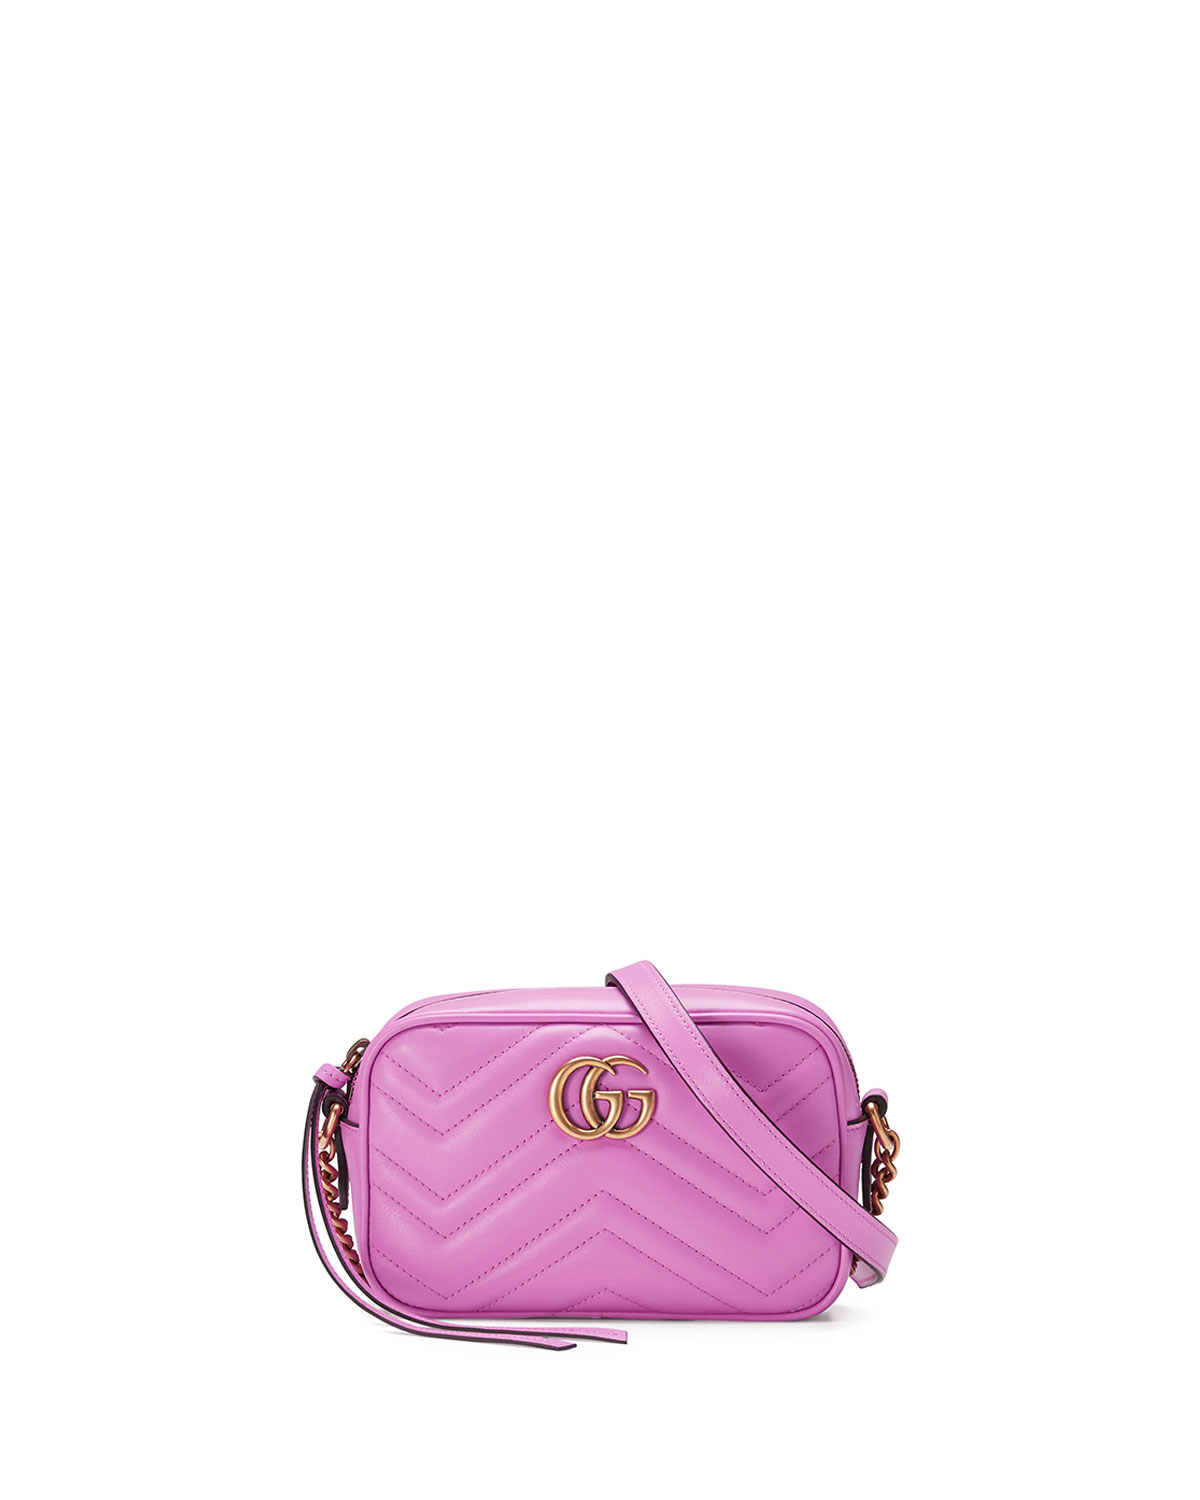 2ec1d6590d4 Gucci GG Marmont Mini Matelassé Camera Bag